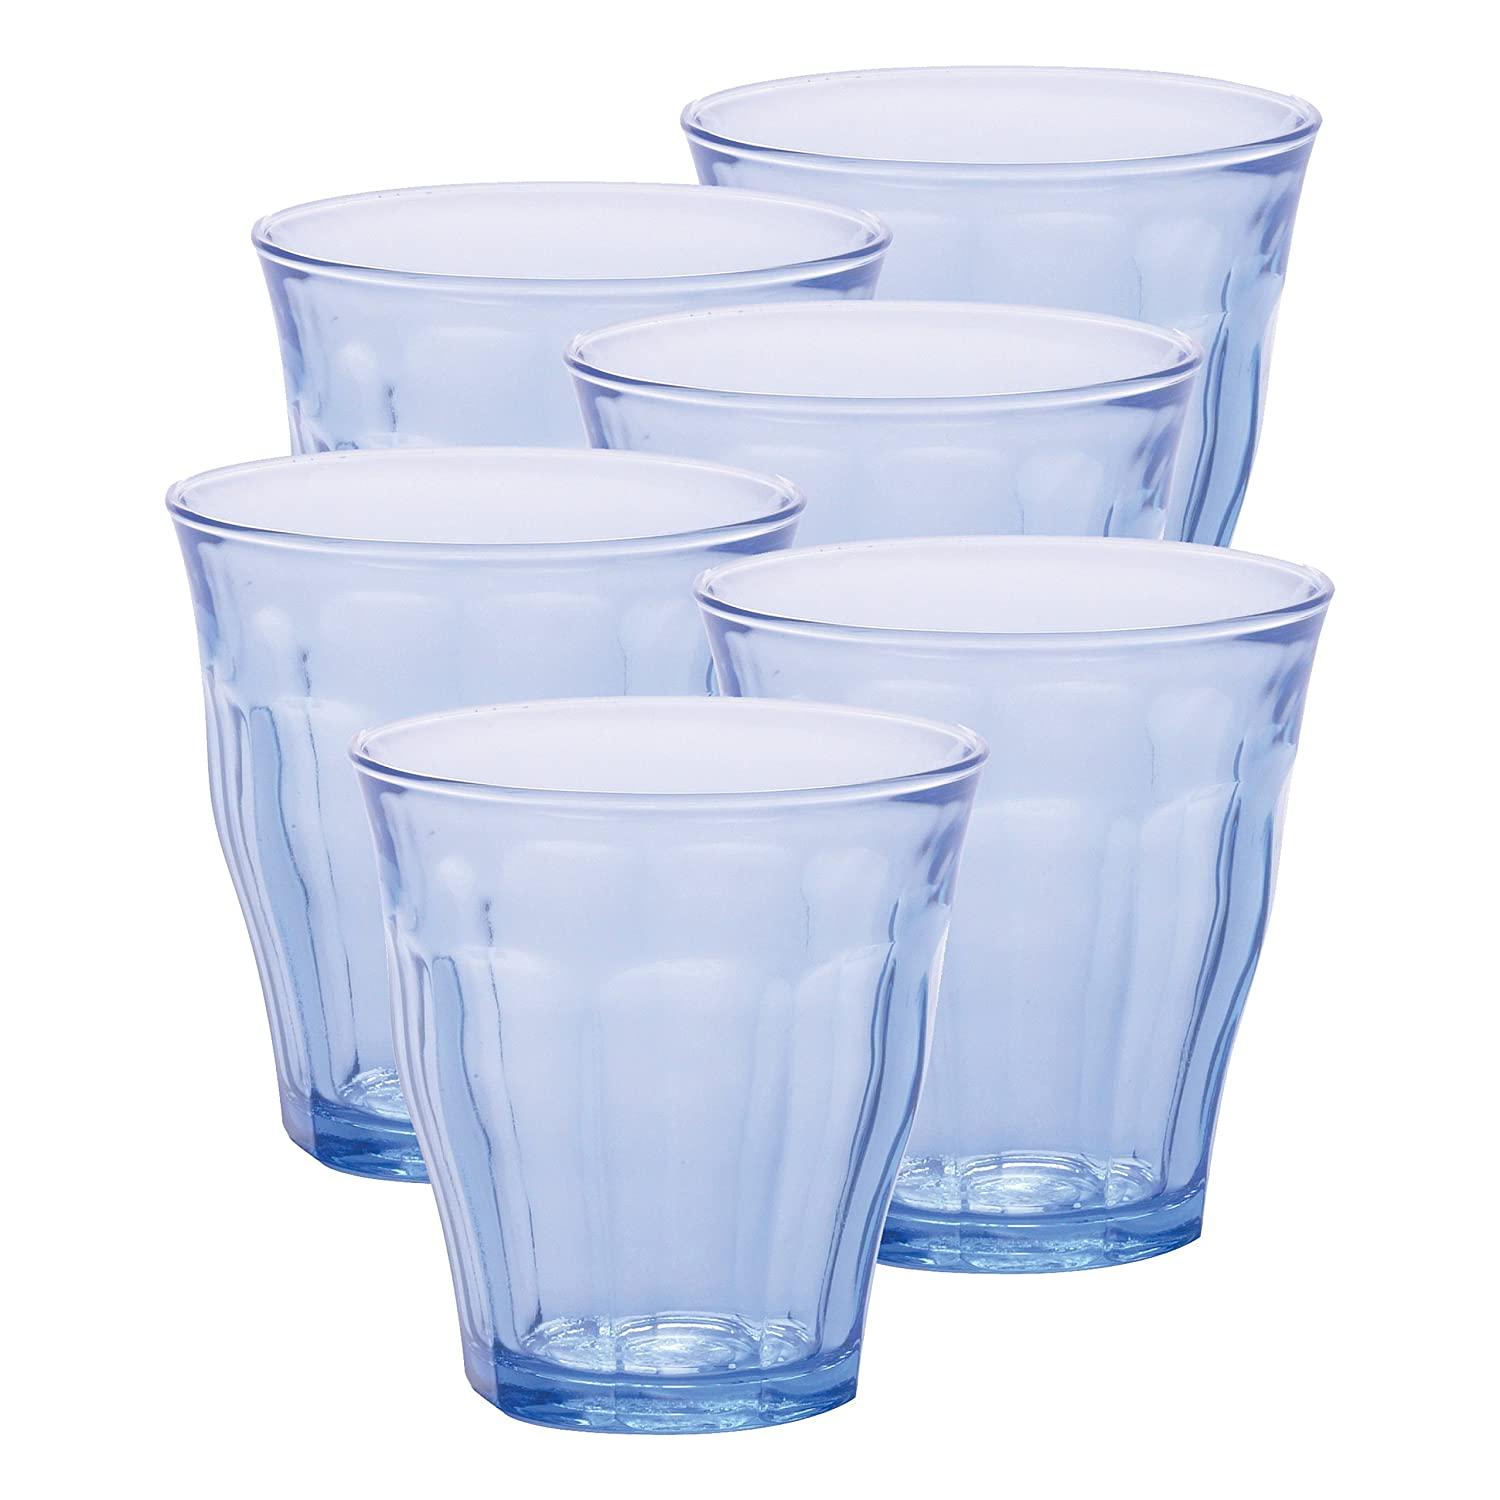 Duralex 25 cl Picardie Tumbler, Pack of 6, Marine Blue: Amazon.co.uk:  Kitchen & Home